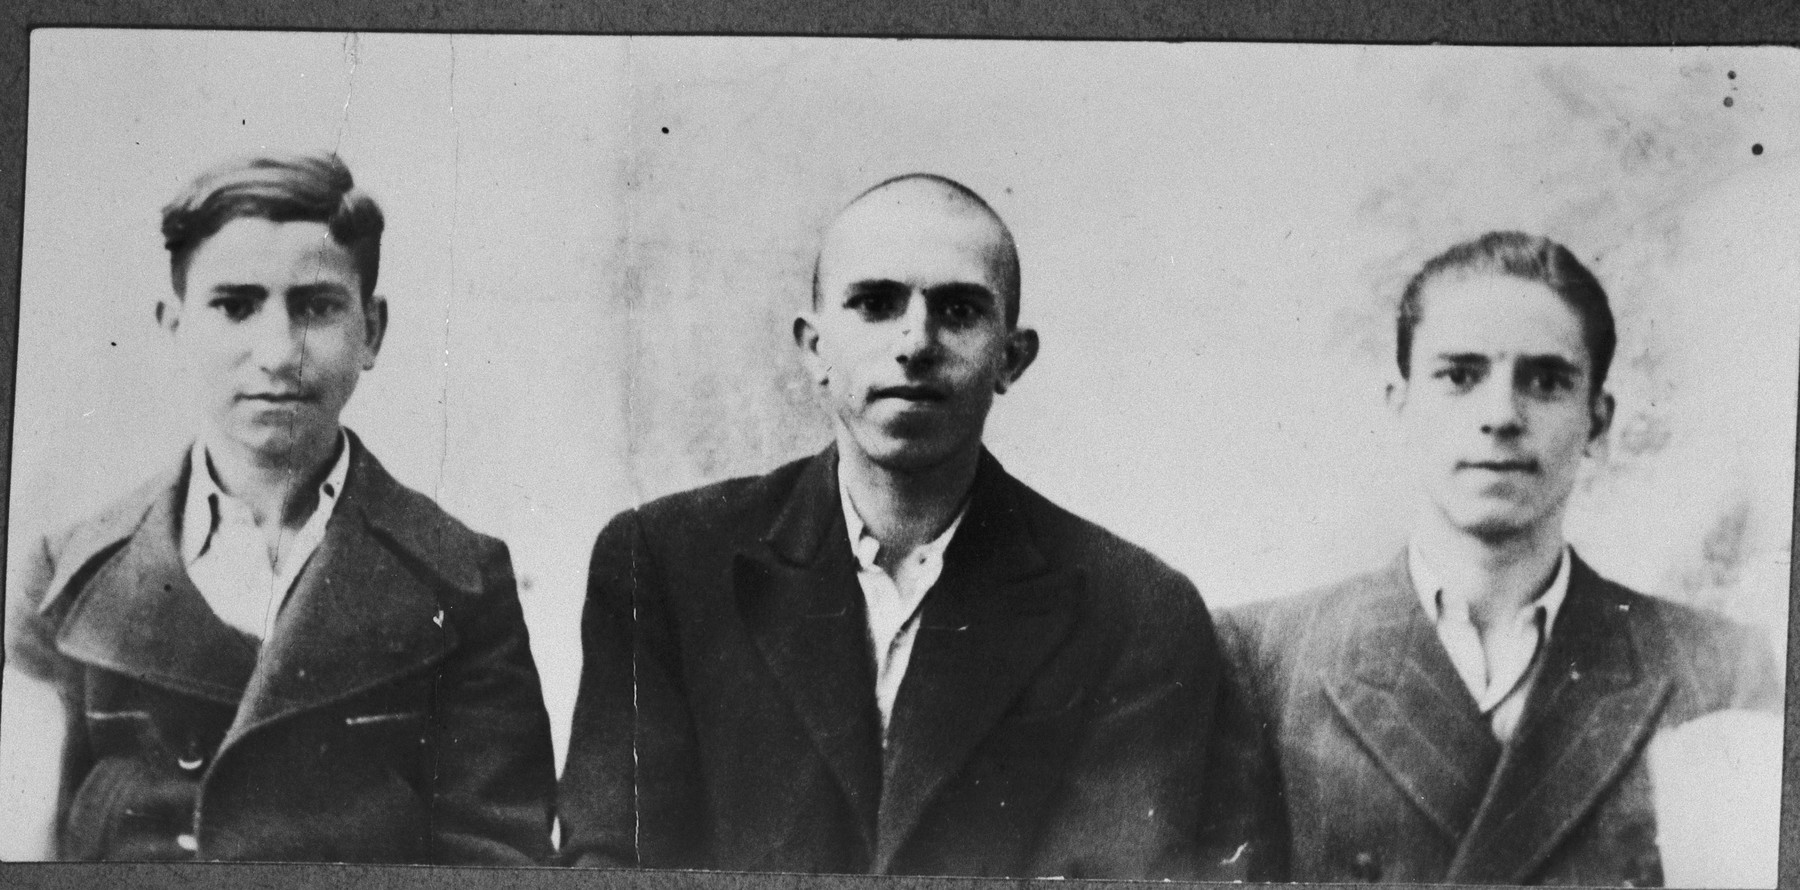 Portrait of Yakov, Avram, and Yosef Kassorla, sons of Shua Kassorla.  They were students.  They lived at Mitrovatska 12 in Bitola.